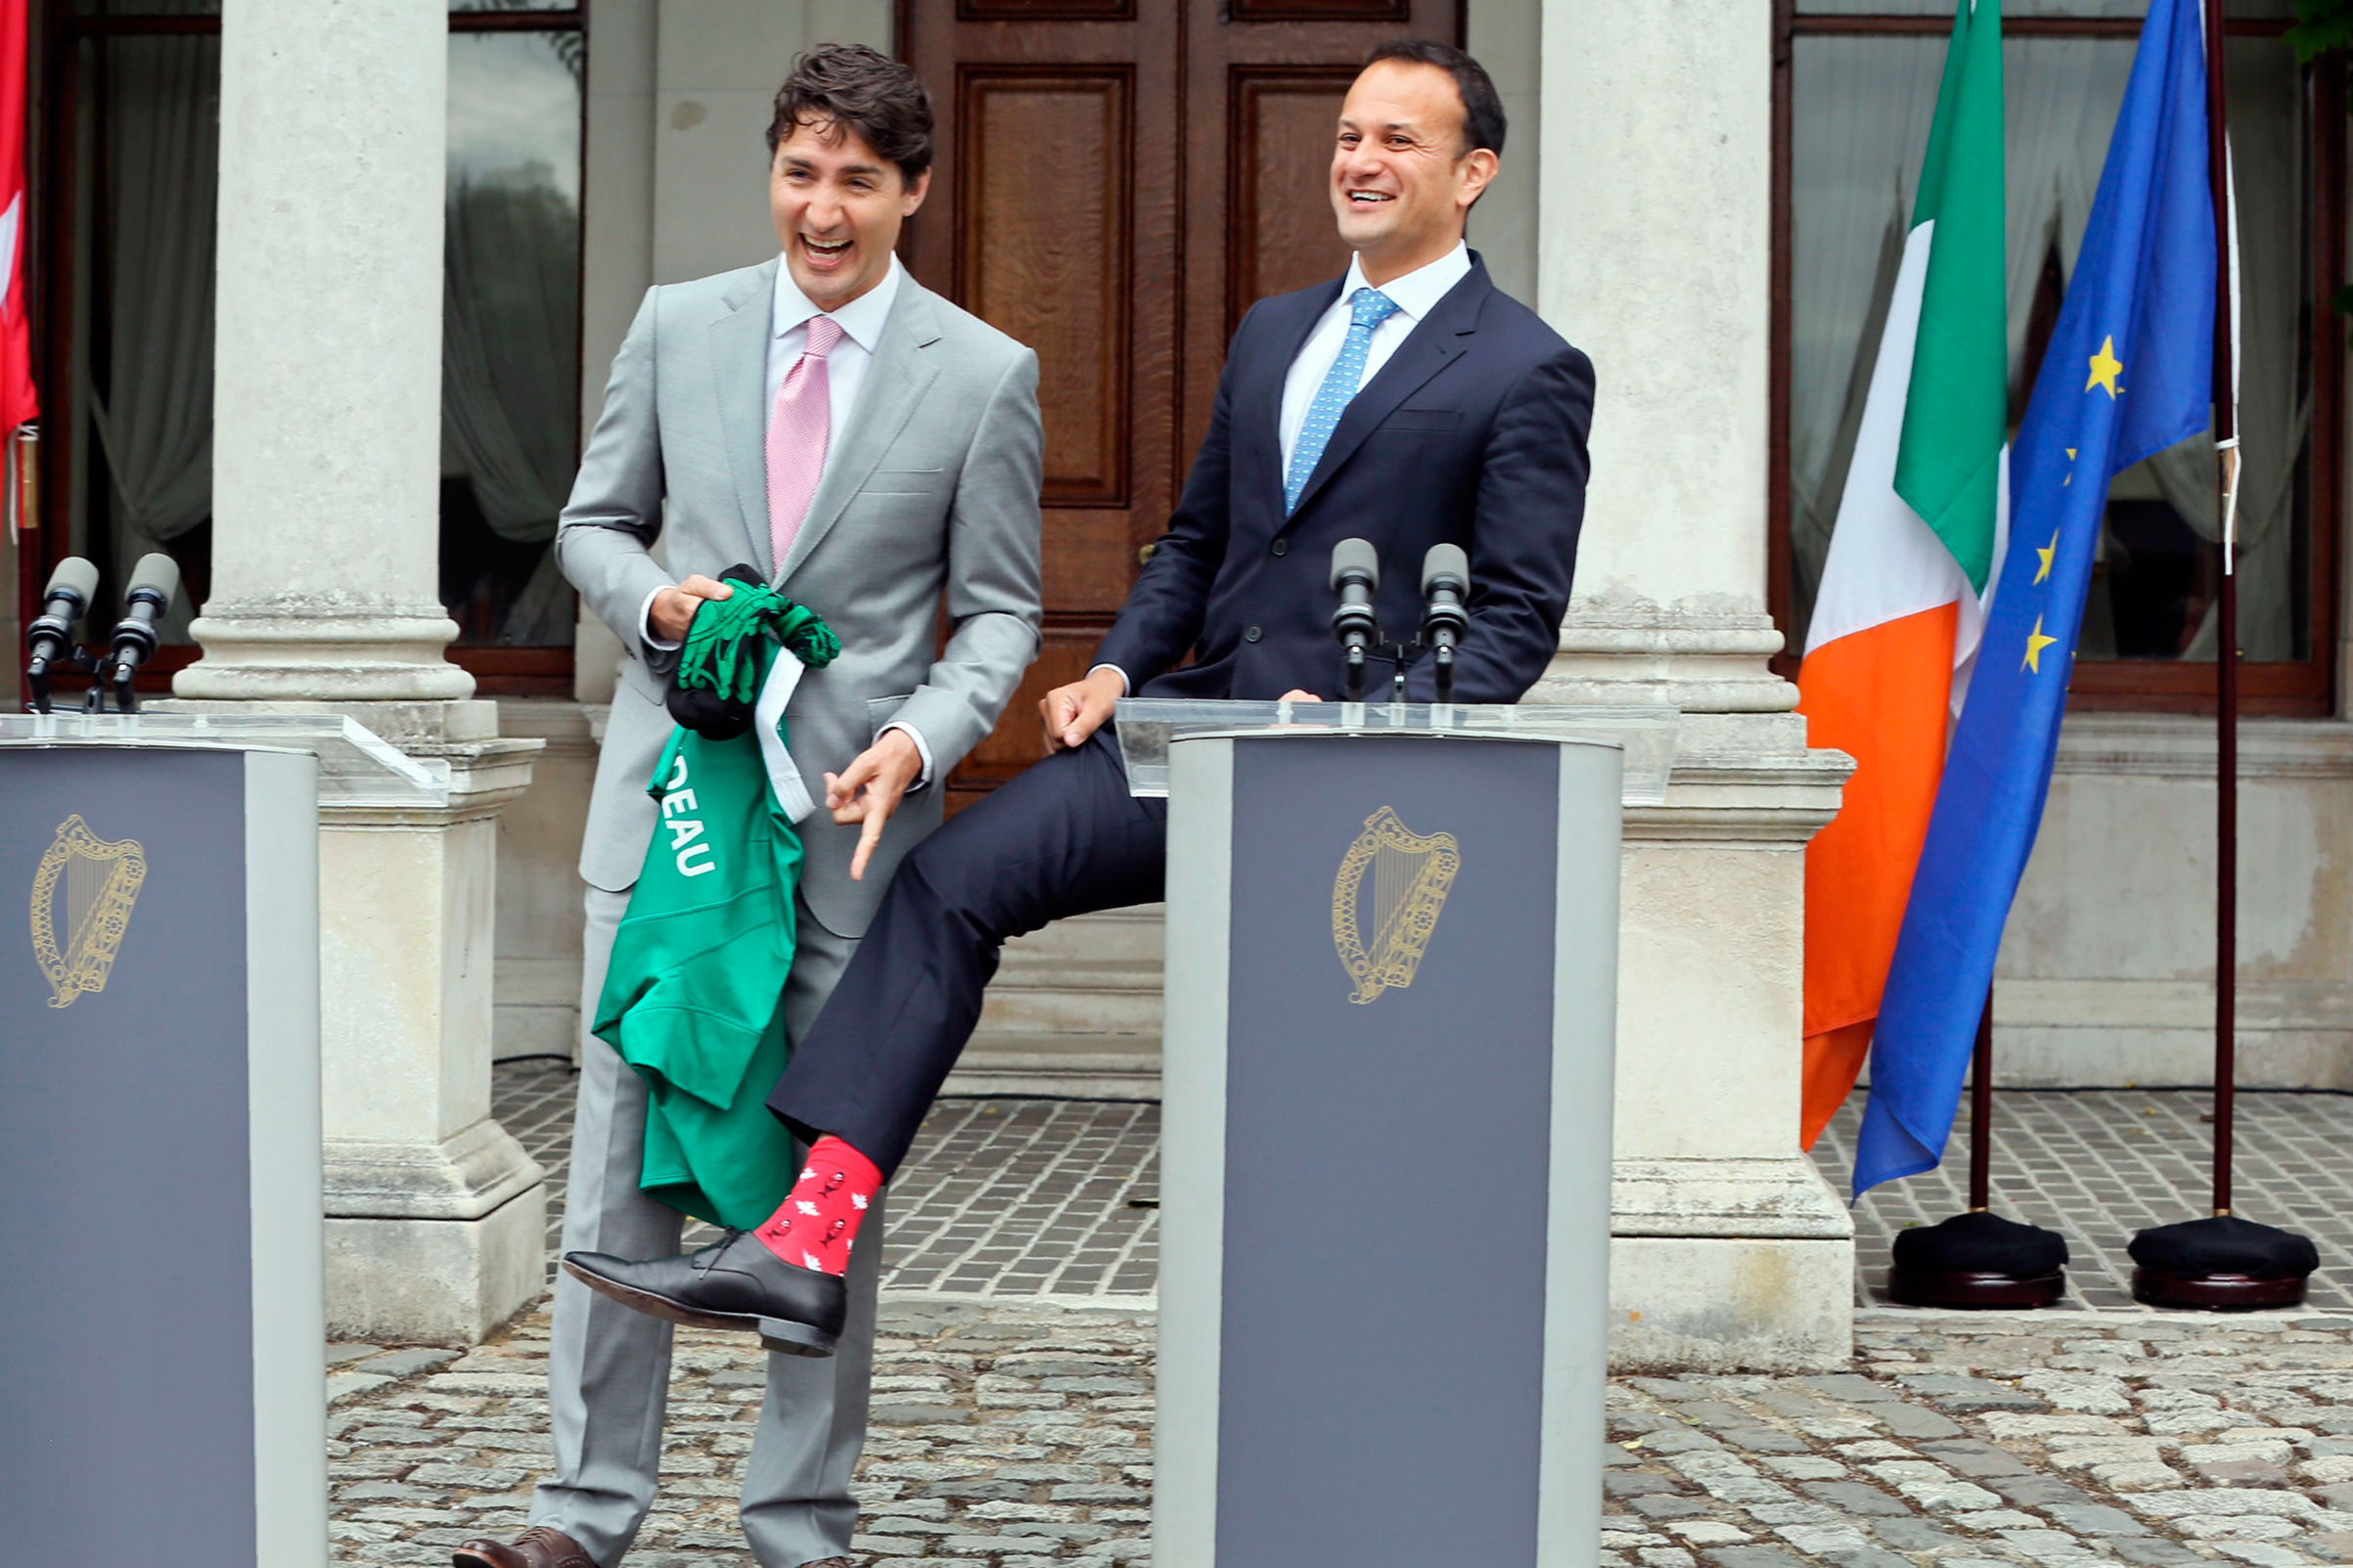 Varadkar, right, hosted Canada's Justin Trudeau just weeks after taking office